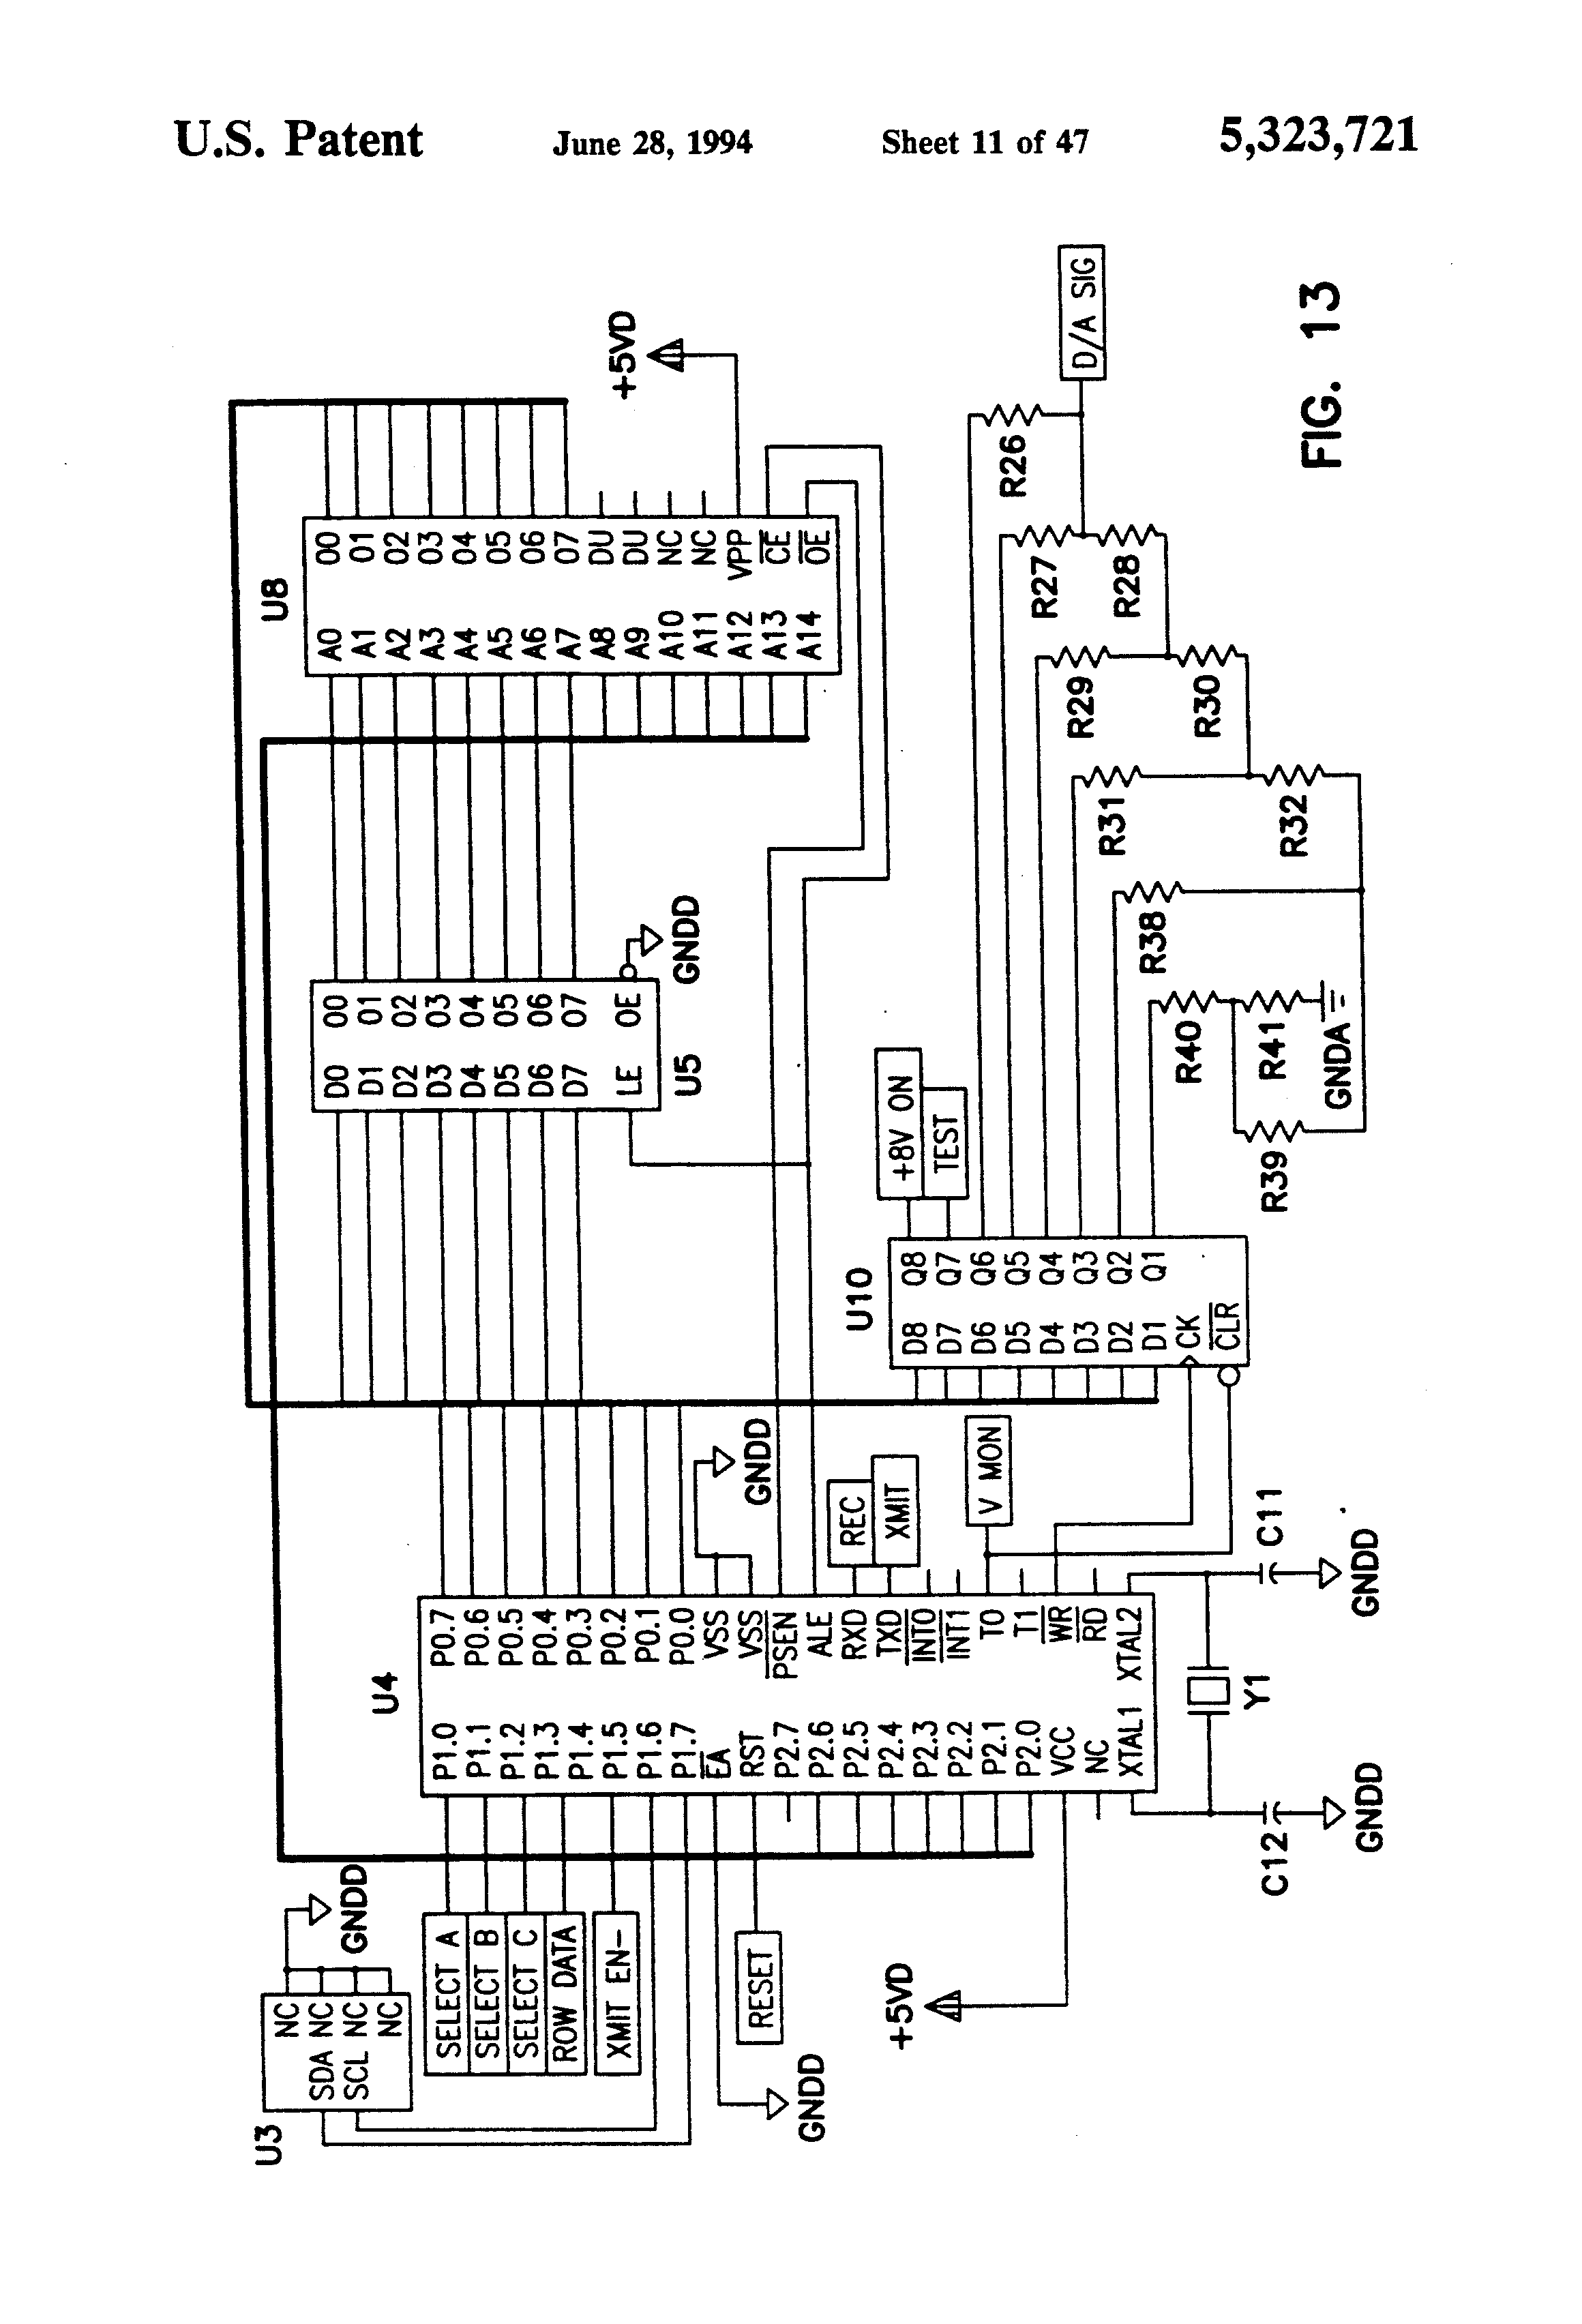 John Deere 1770 Planter Wiring Diagram : Patent us planter monitor system google patents